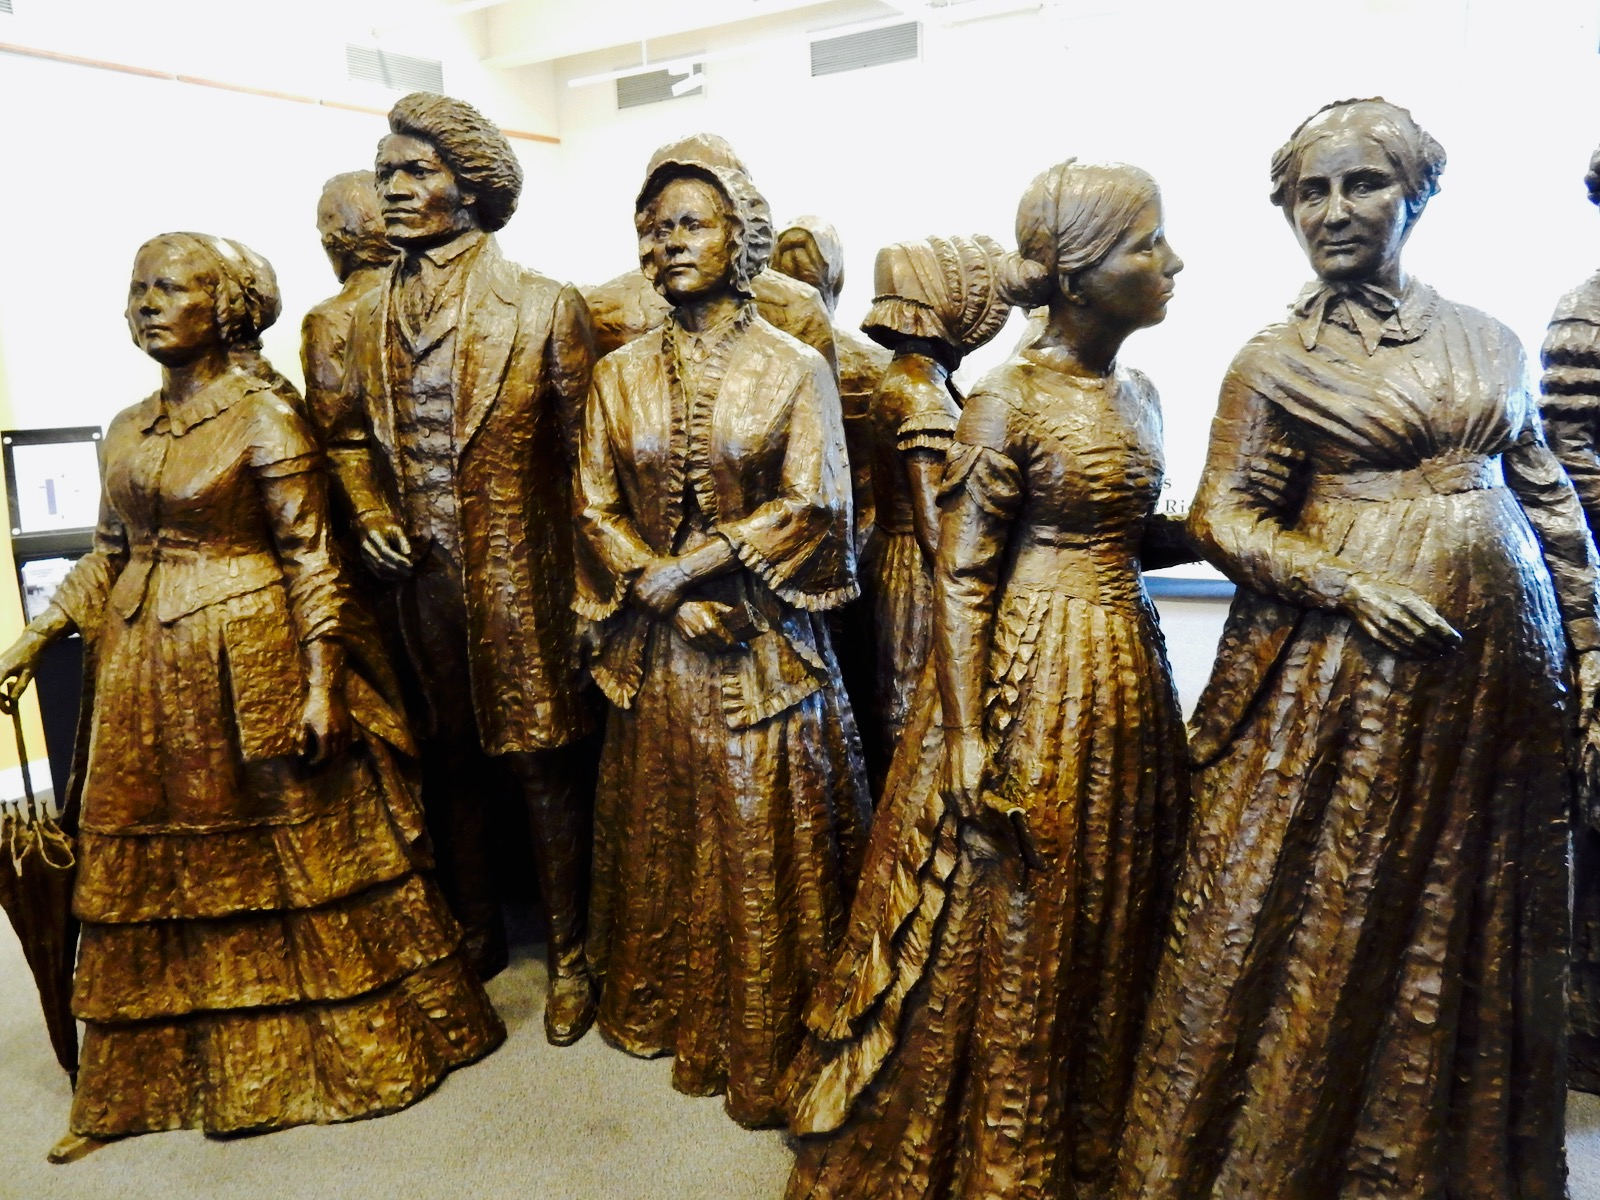 """seneca falls women Seneca falls, ny (wham) - thousands of people united together in seneca falls for the women's march saturdaywe are all 'per-sisters' and we are here calling all women,"""" said arlette miller smith as she read a poem."""